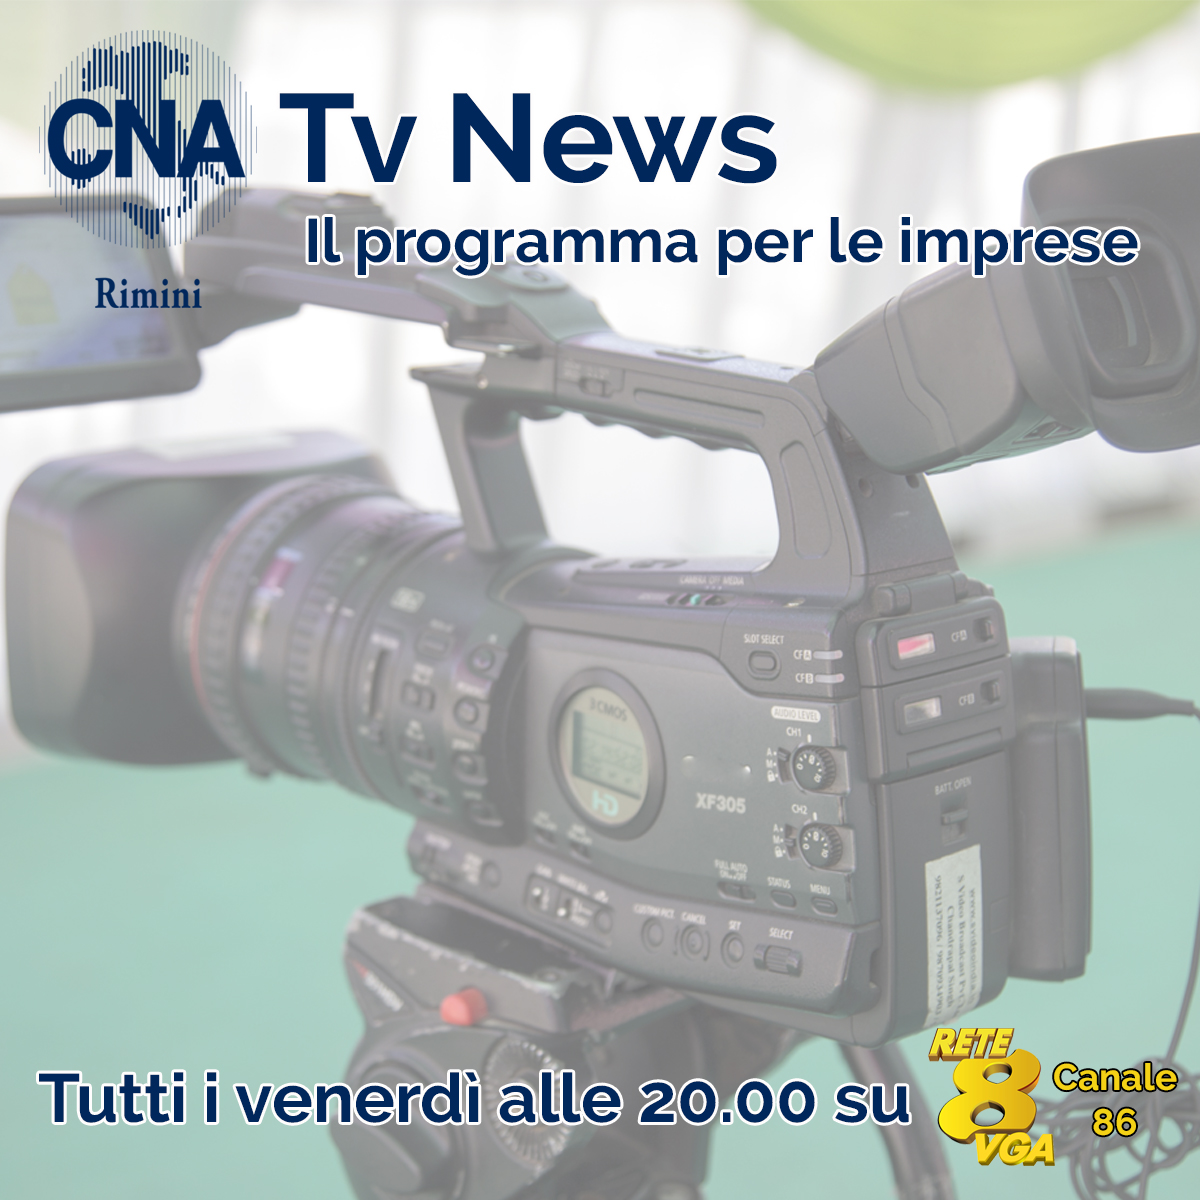 CNA TV NEWS – GUARDA I SERVIZI